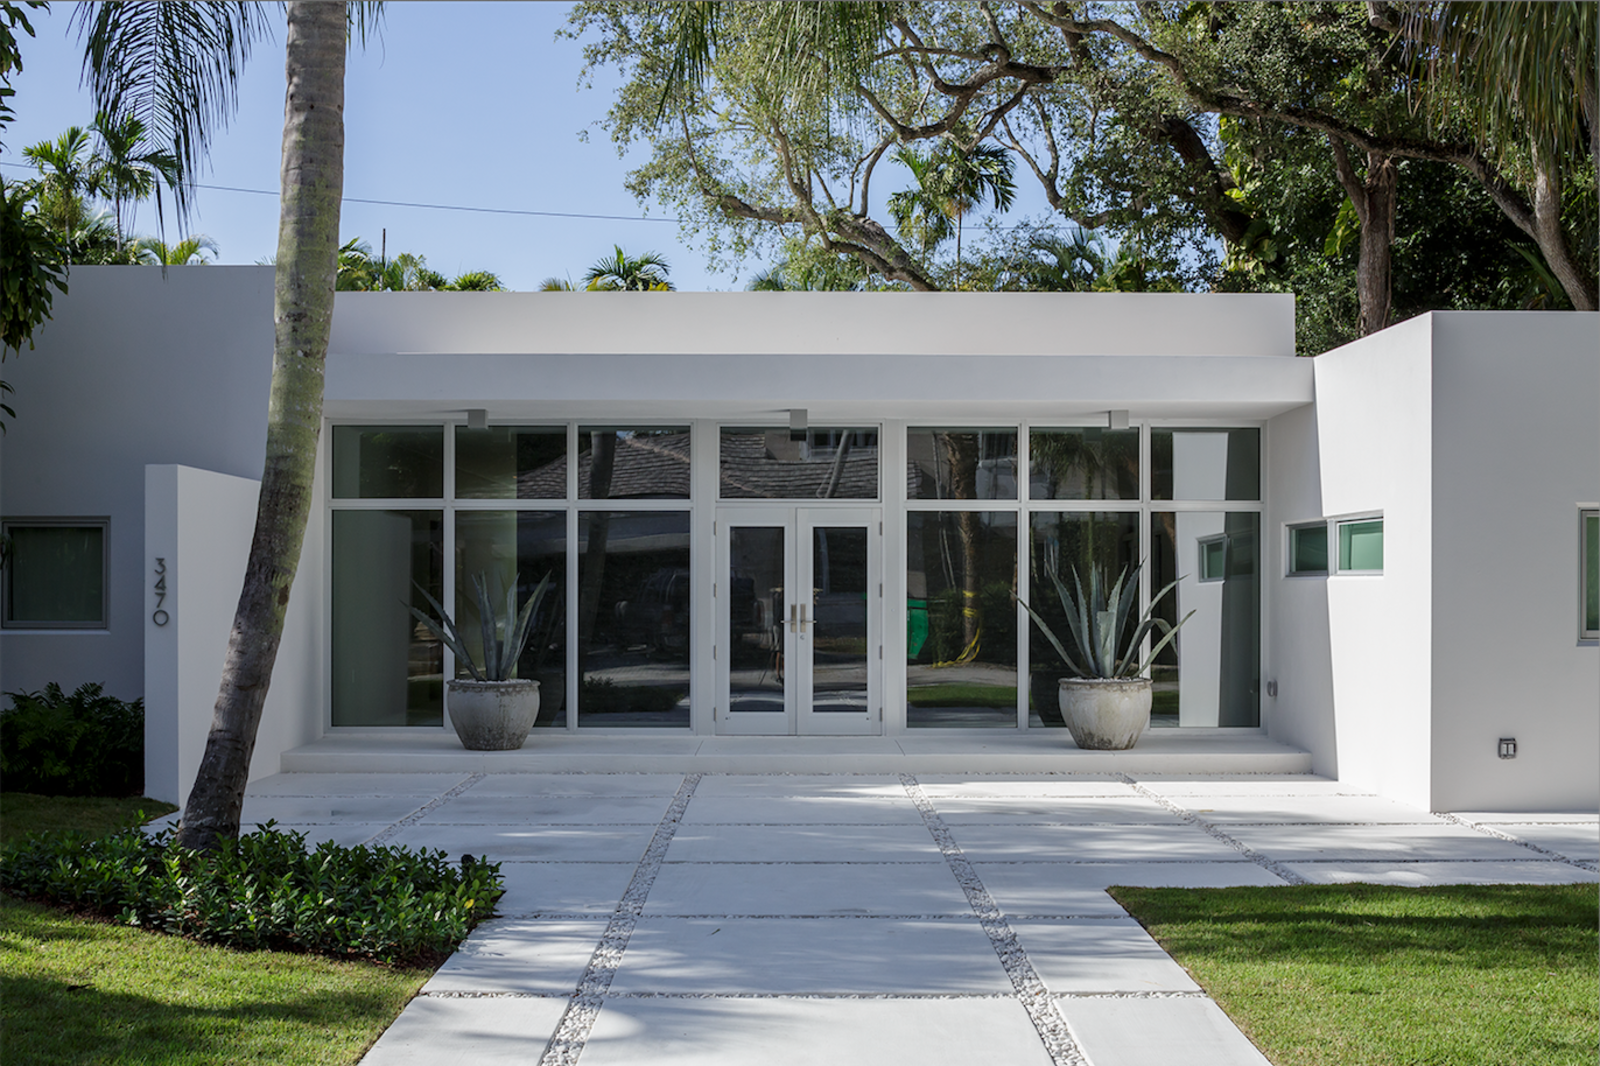 The home's potential for outward expansion was limited, so new glass doors and windows were installed in a storefront configuration (a decision not common to residential construction) to provide ample natural light for the main entrance.  All-White Homes in Scorching Hot Climates by Luke Hopping